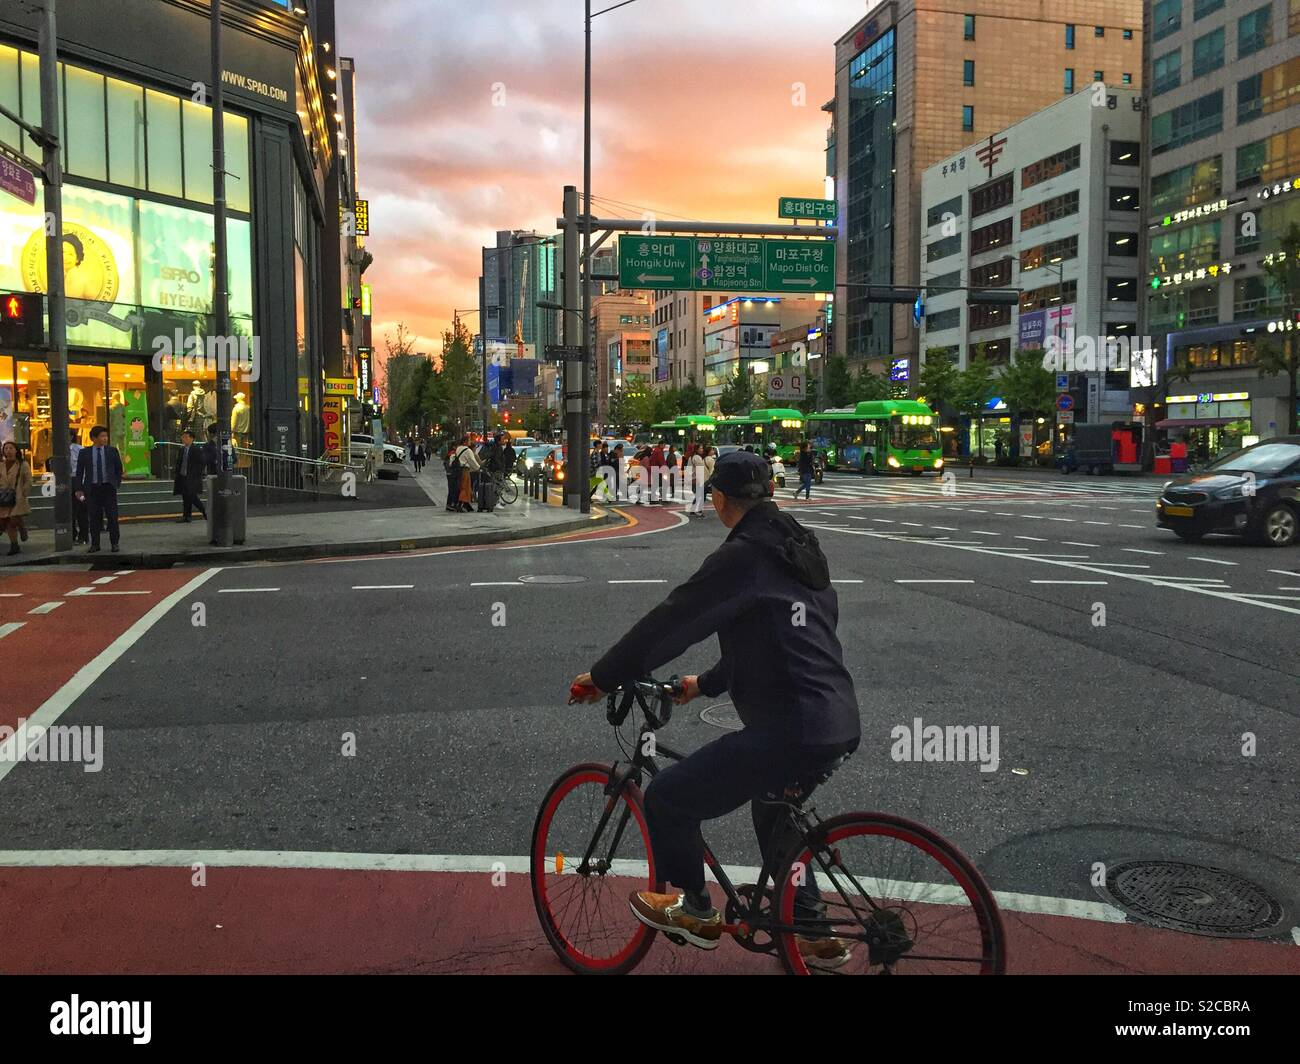 A man cycles through the busy streets of Seoul, South Korea at sunset. - Stock Image